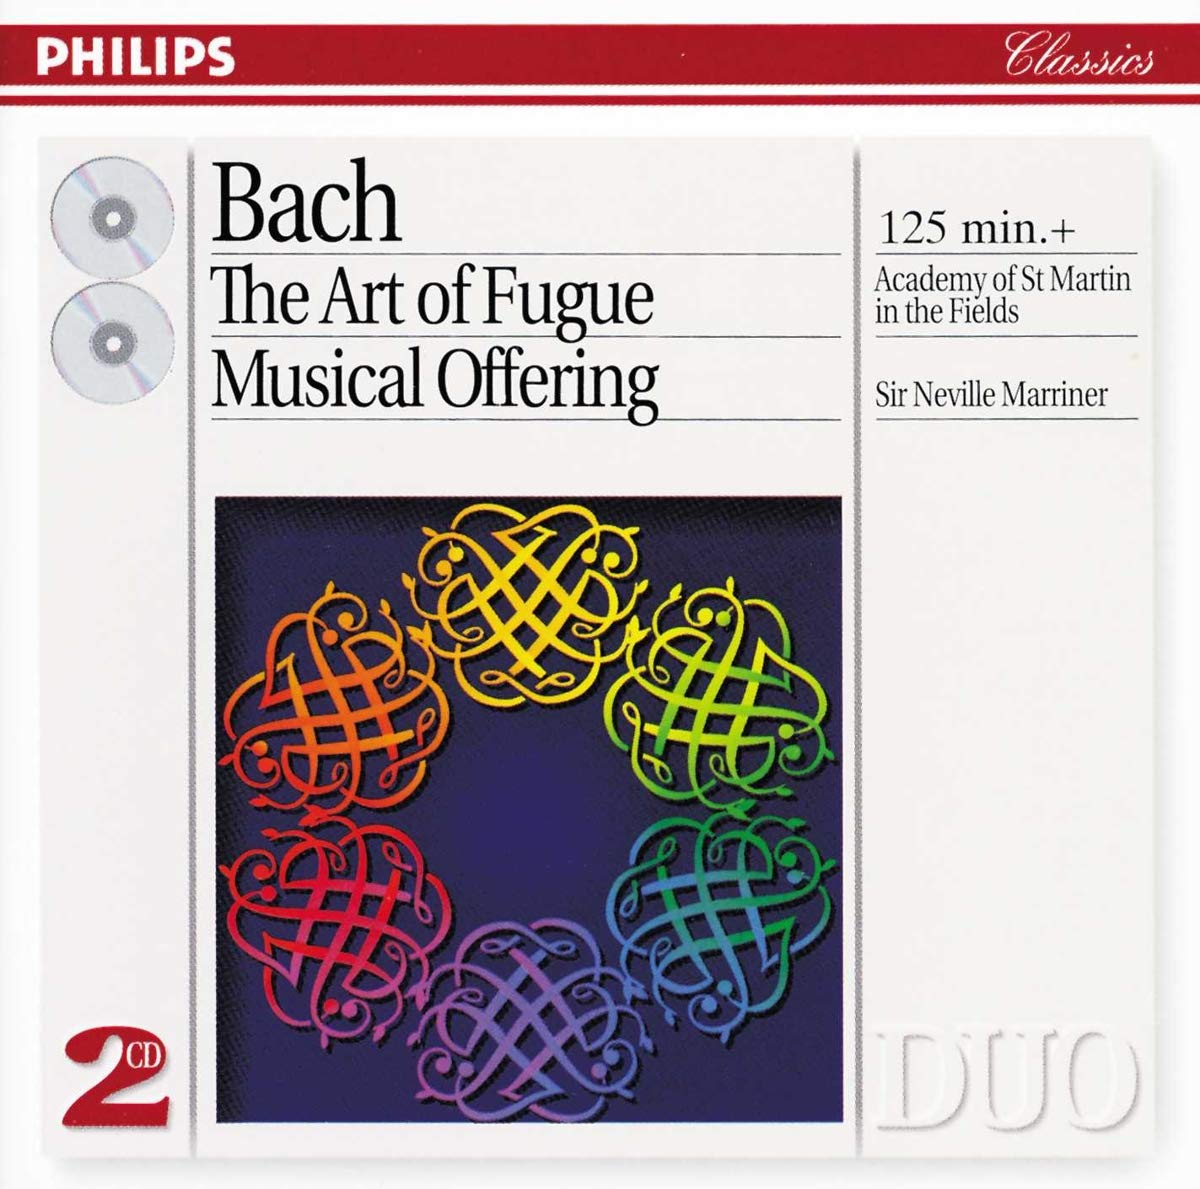 Bach: The Art service of Musical Fugue New product type Offering